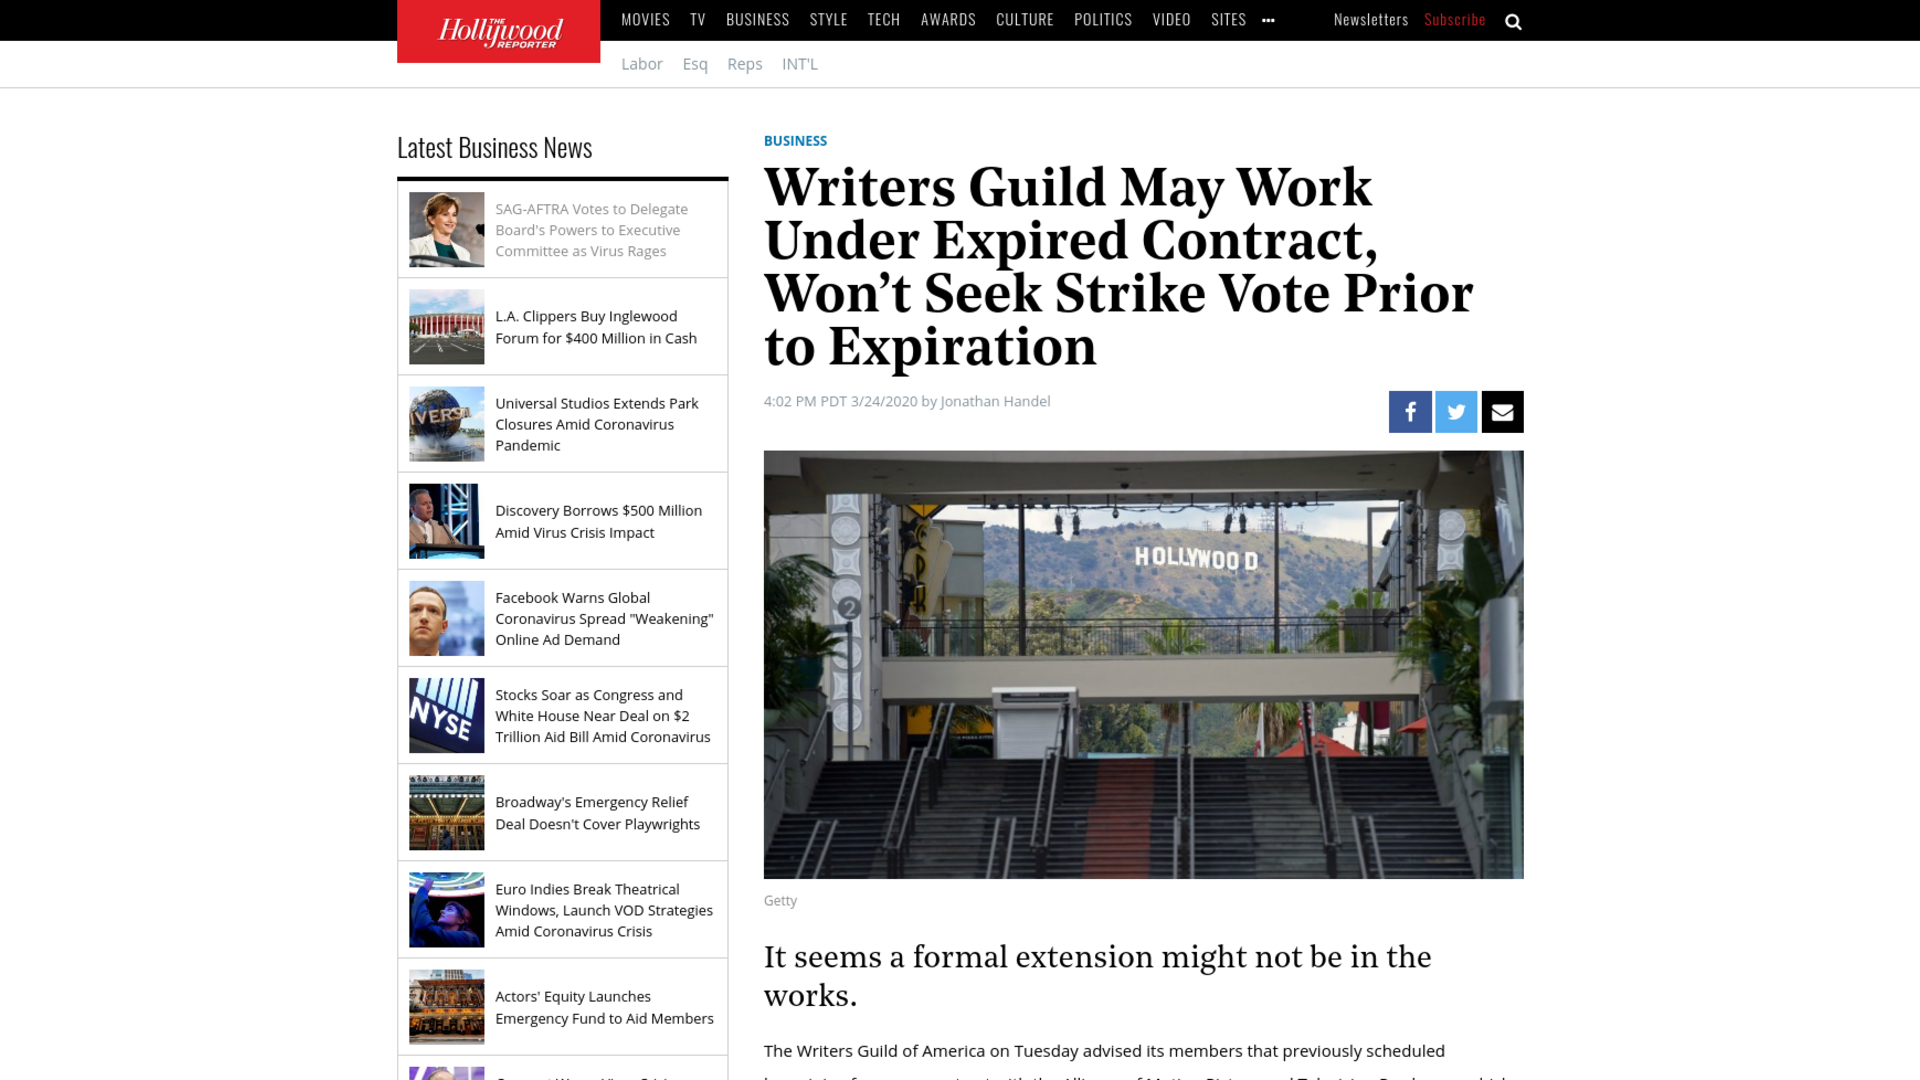 Fairness Rocks News Writers Guild May Work Under Expired Contract, Won't Seek Strike Vote Prior to Expiration